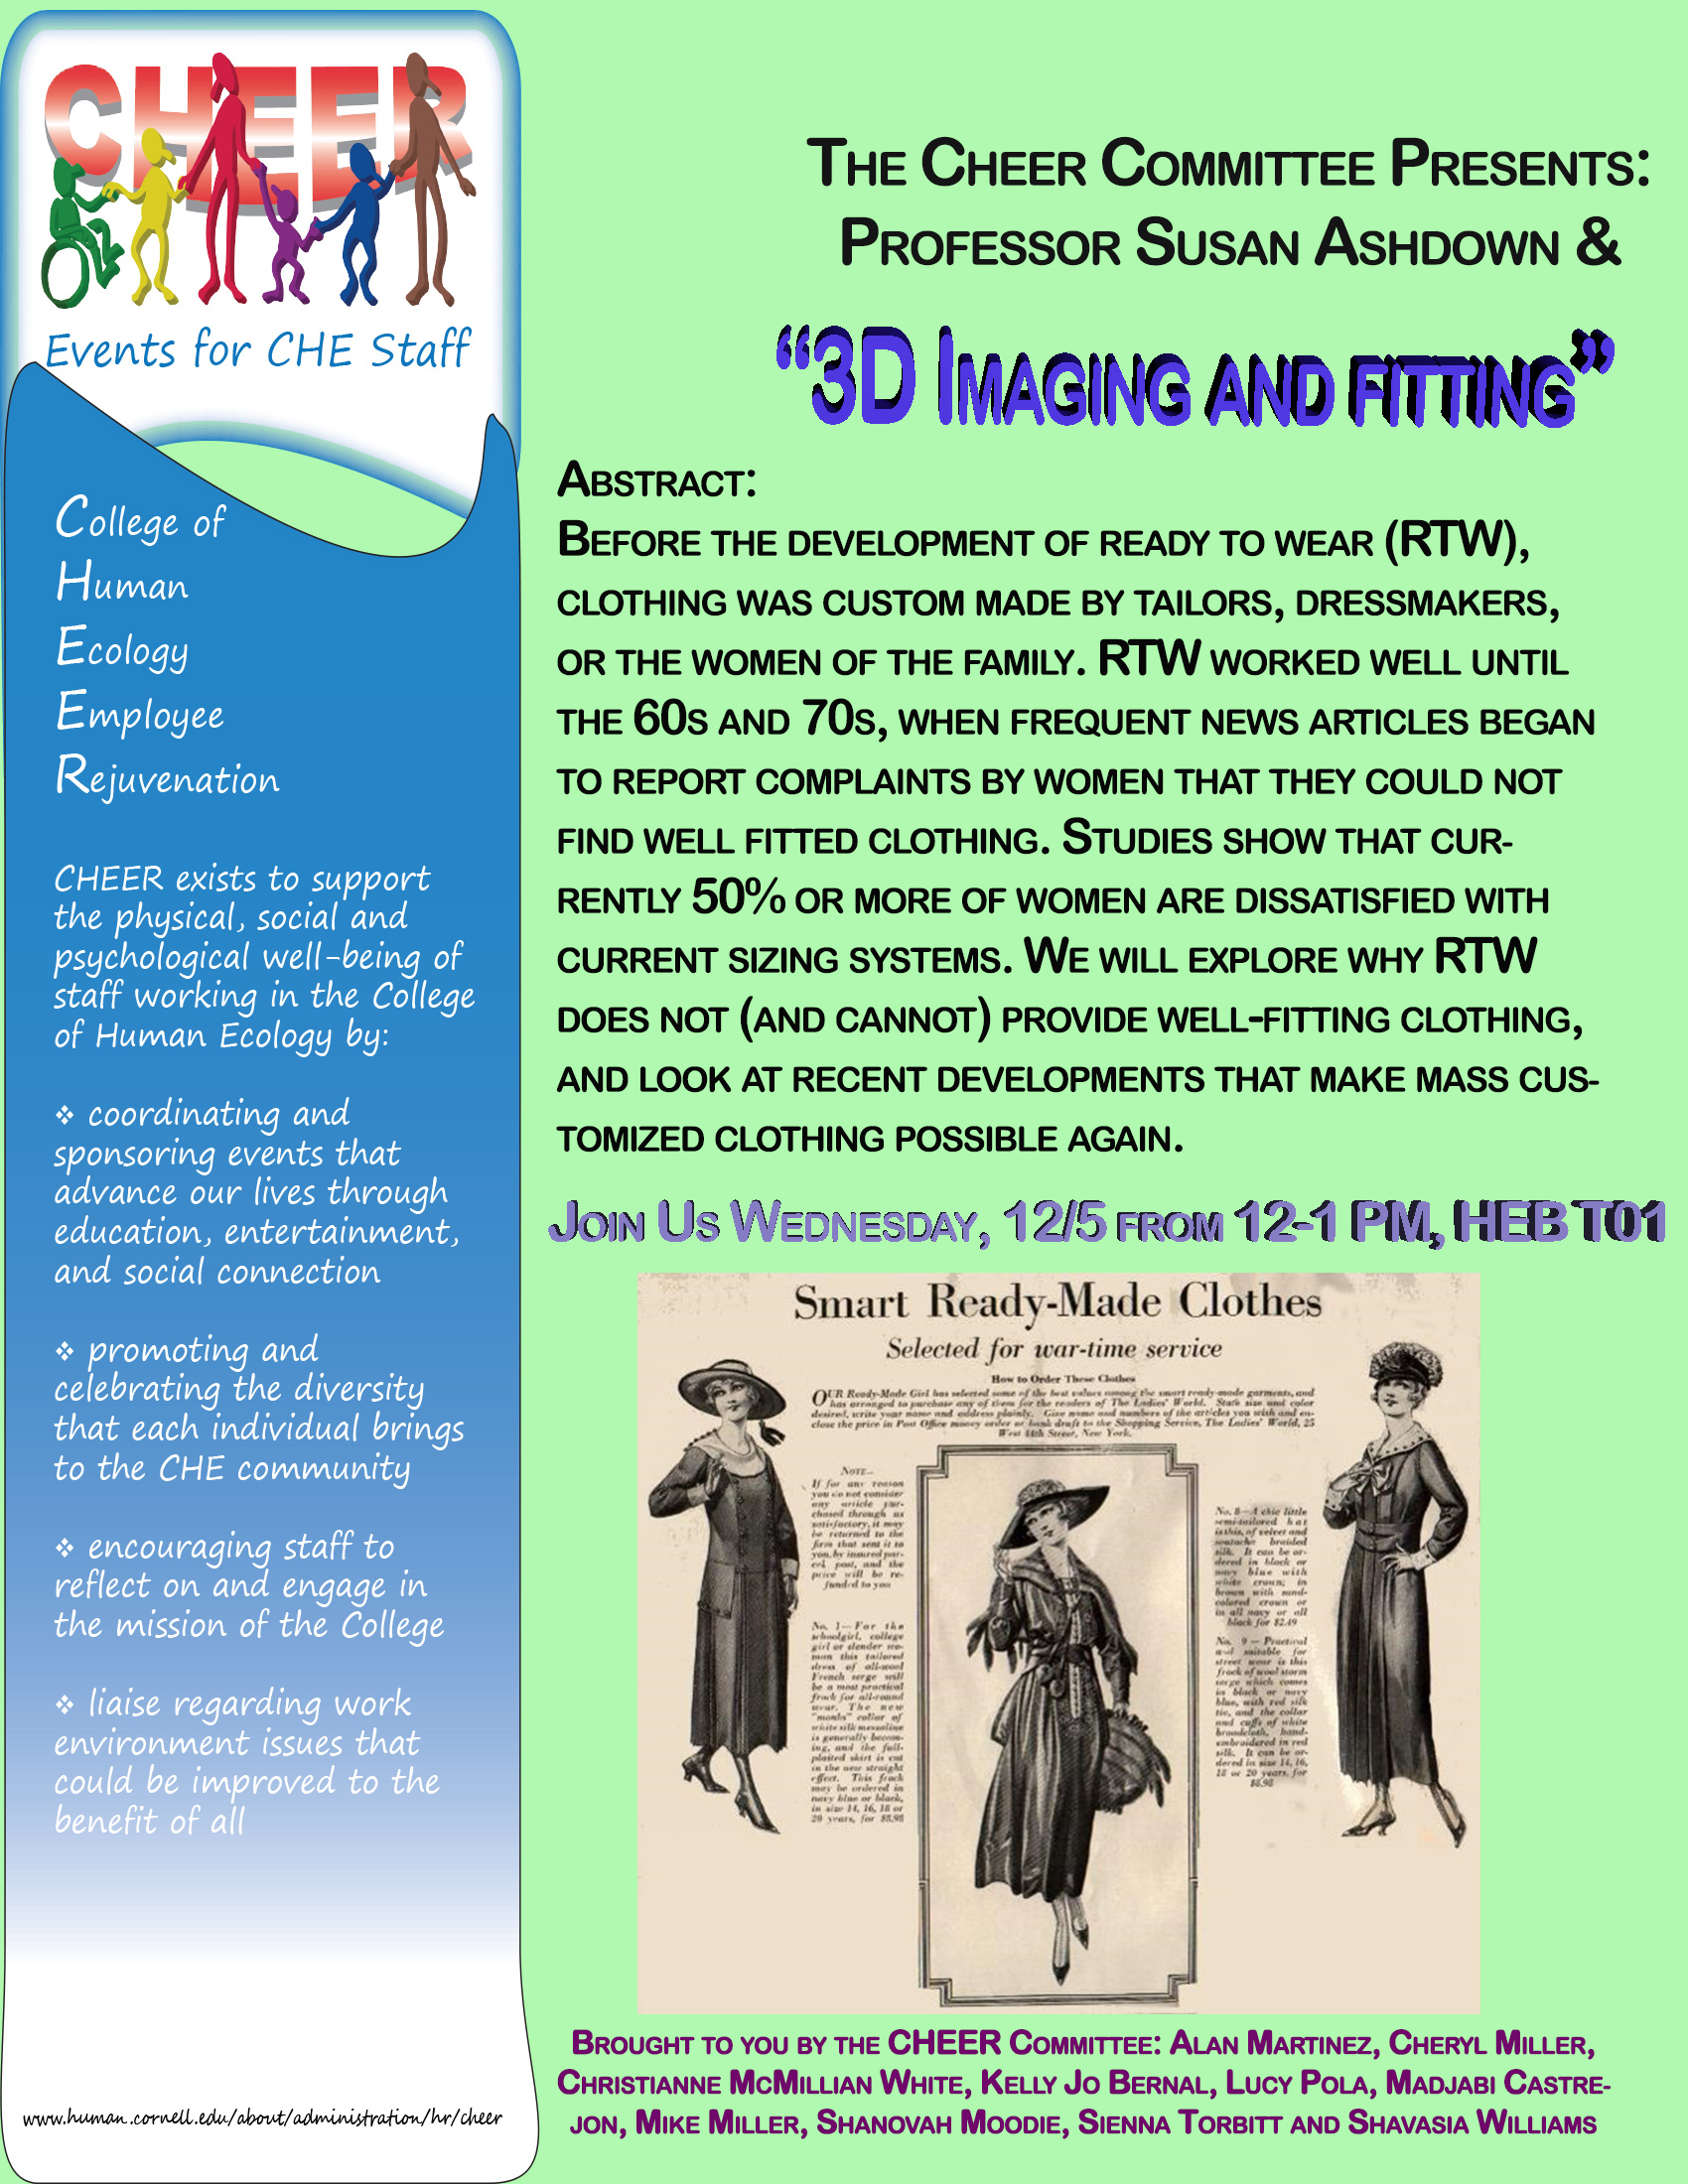 Flyer advertising 3D image talk on 12/5/18, room HEB T01